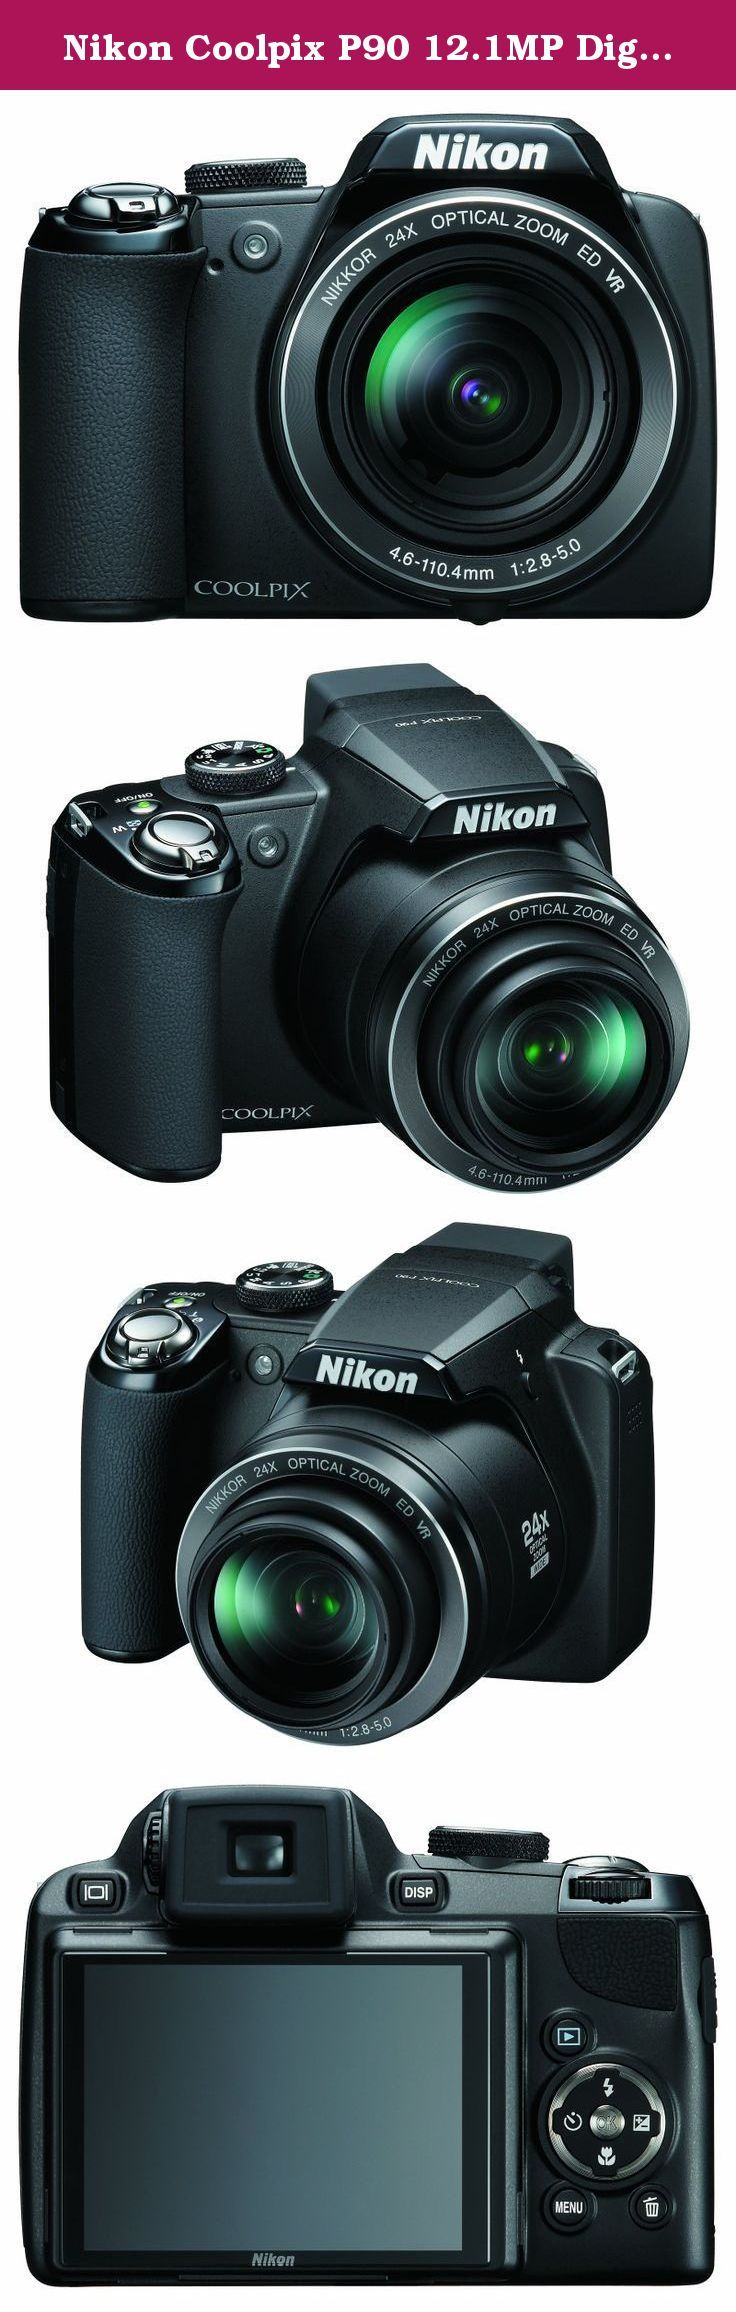 Nikon Coolpix P90 12.1MP Digital Camera with 24x Wide Angle Optical Vibration Reduction (VR) Zoom and 3 inch Tilt LCD. Experience even closer encounters with Nikon's Coolpix P90, with 12.1 effective megapixels and an incredible 24x optical Zoom-NIKKOR ED glass lens for stunning prints as large as 16x20 inches. The camera's bright, 3.0-inch high-resolution vari-angle LCD and Electronic Viewfinder make it easy to compose and share your pictures. And Nikon's new 4 Way VR Image Stabilization...